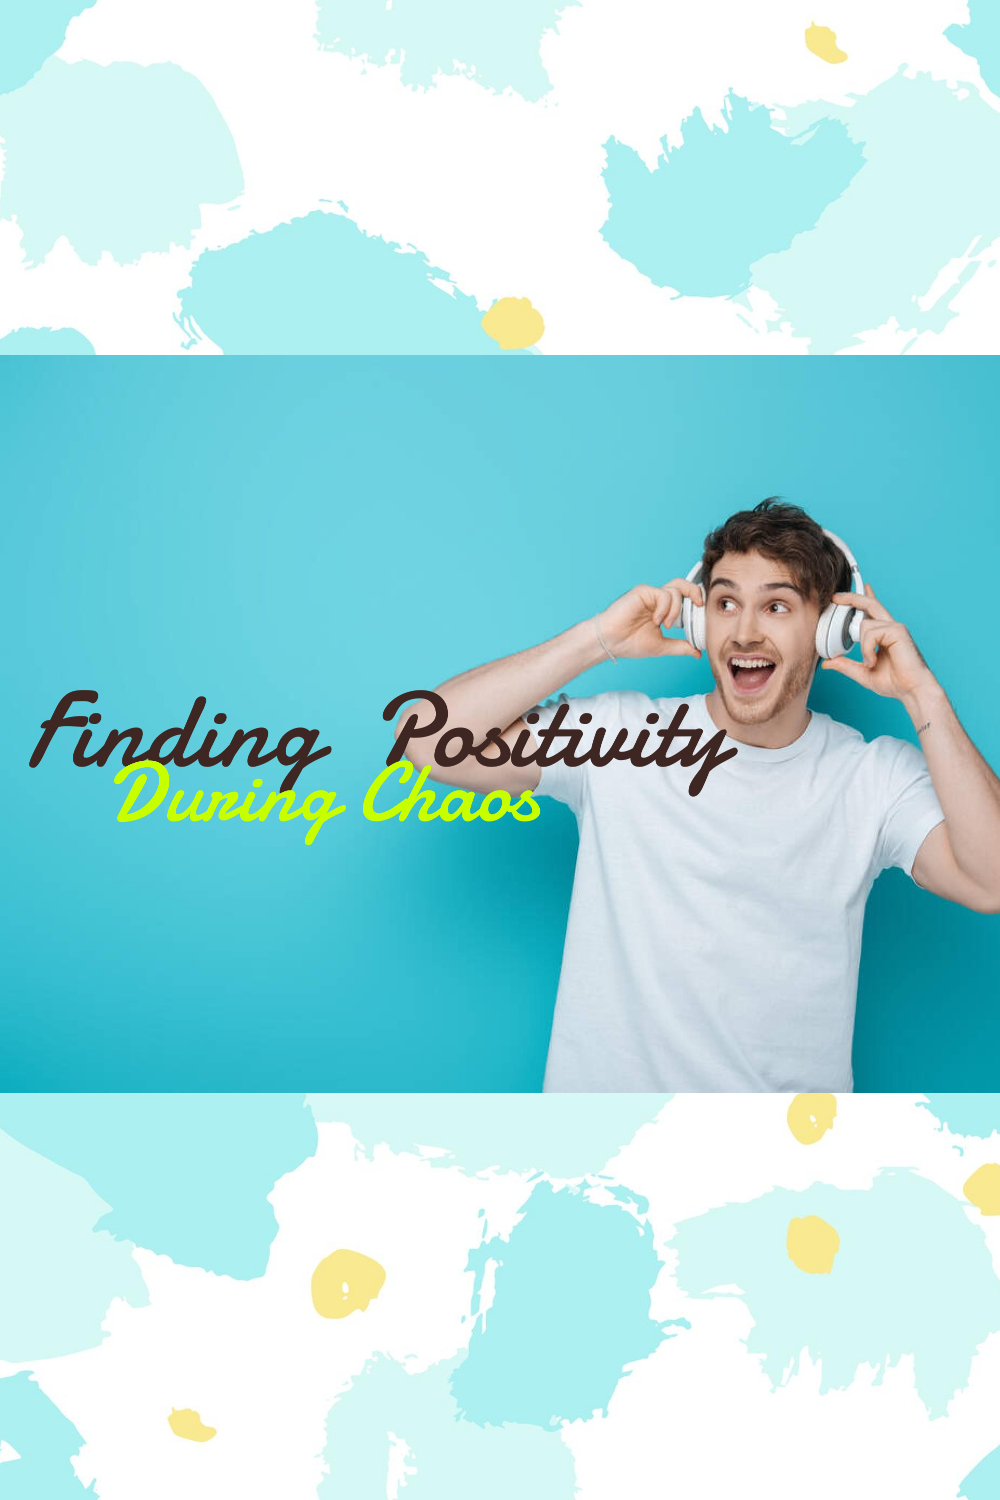 Finding Positivity During Chaos